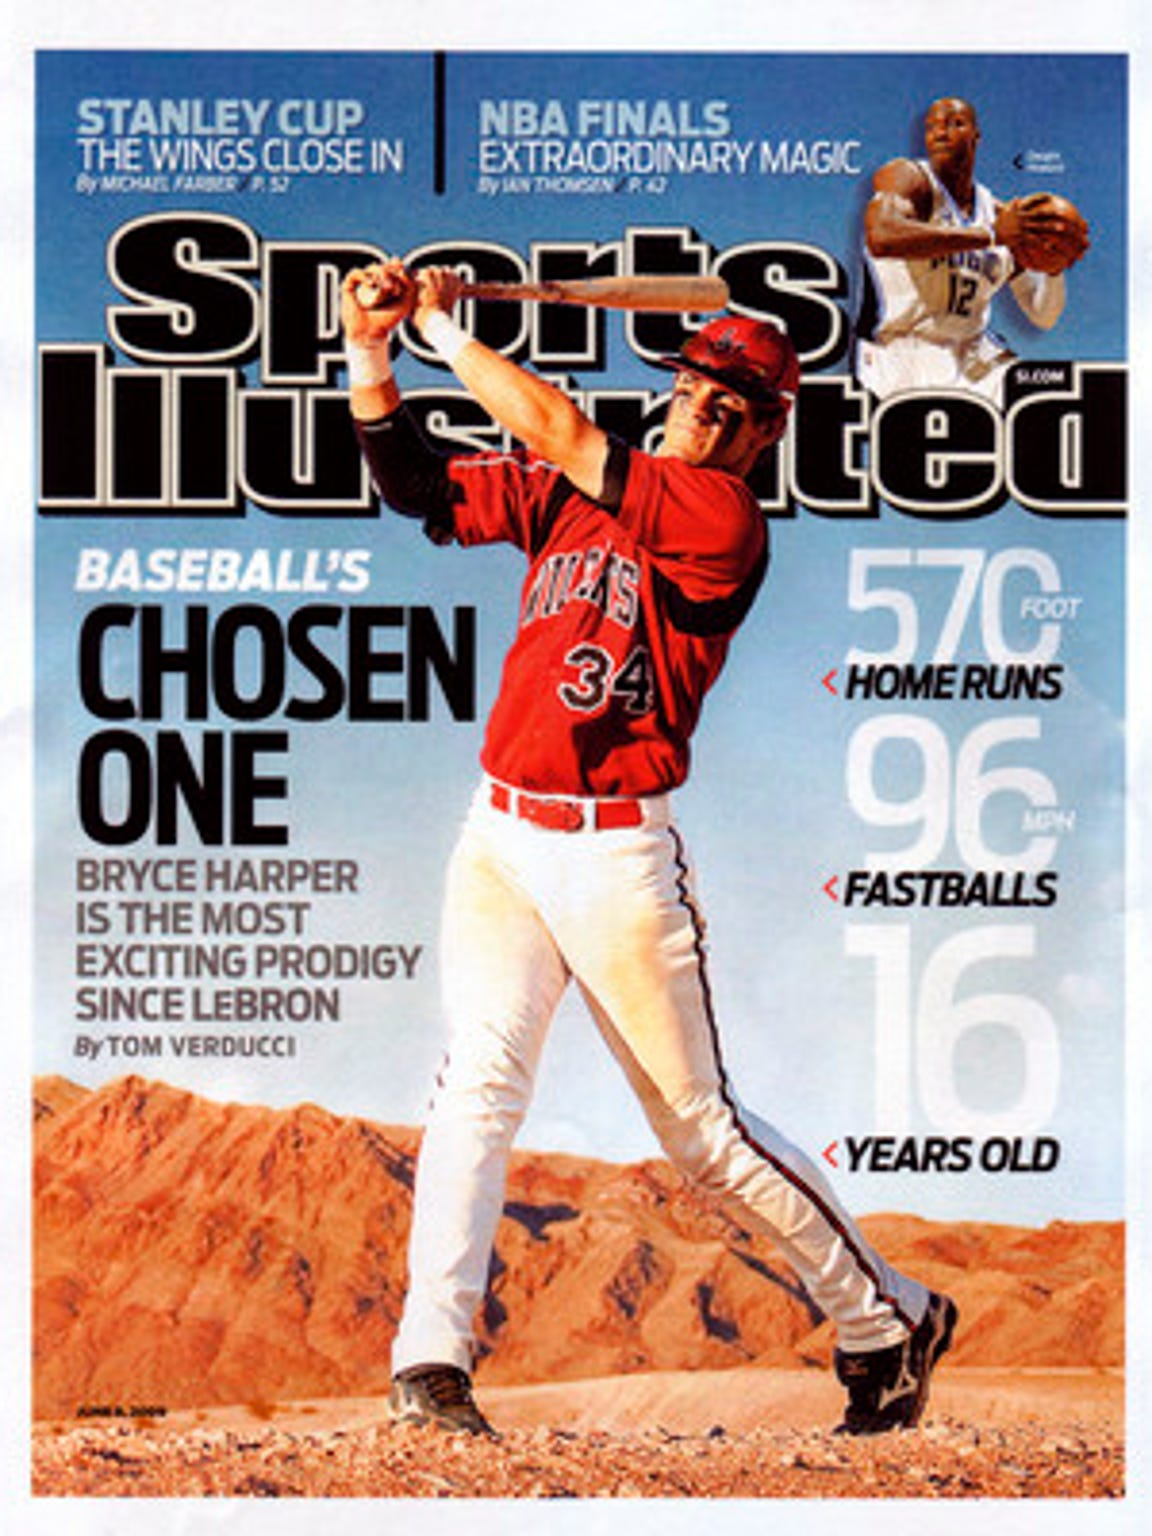 Bryce Harper graced the coverage of Sports Illustrated